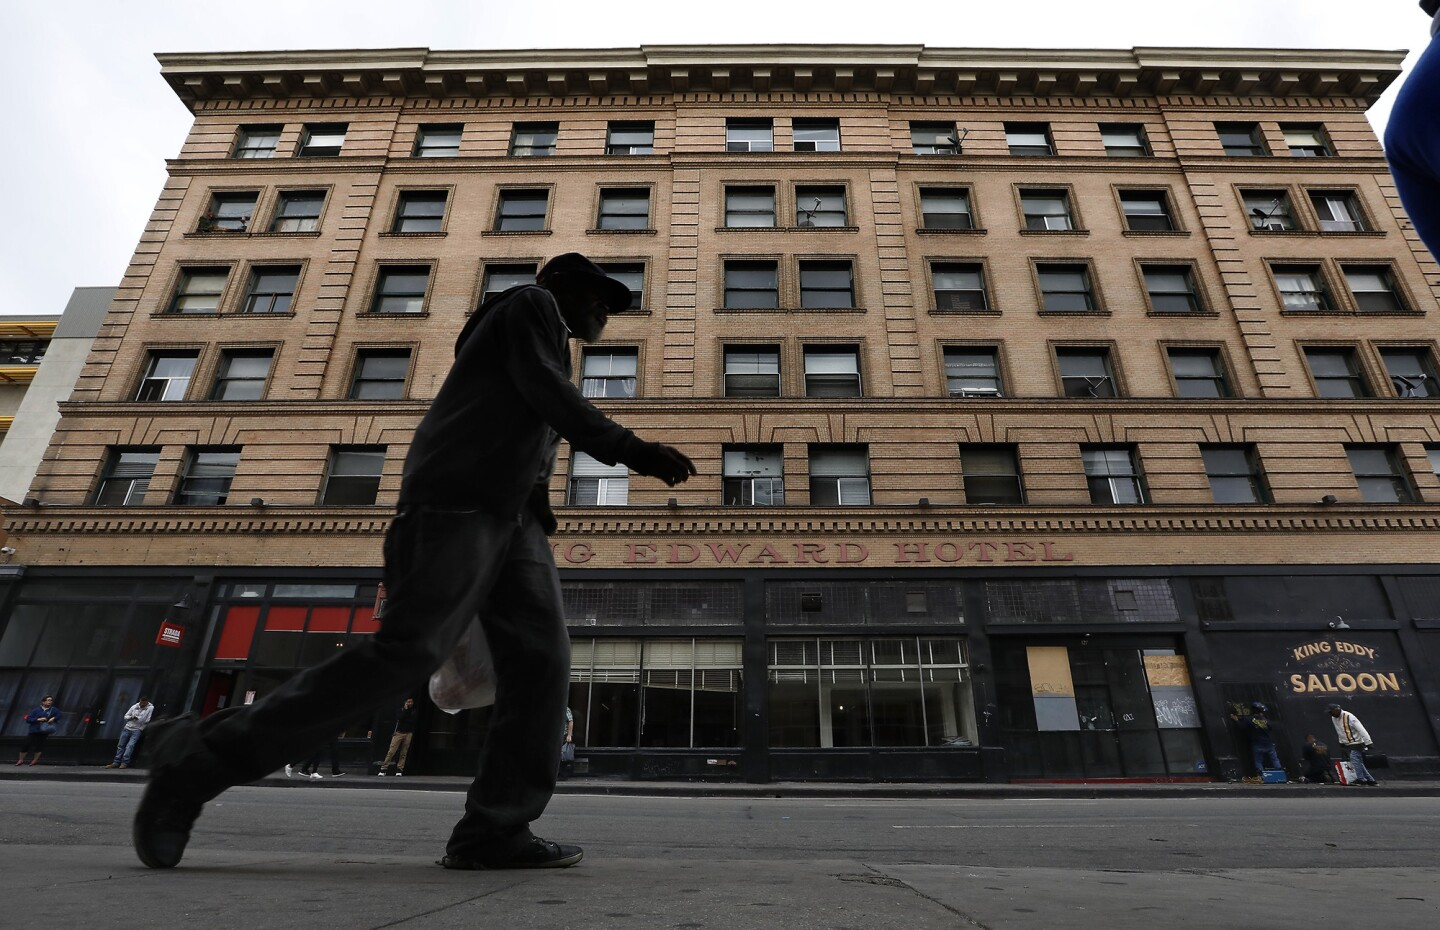 A pedestrian walks along 5th St. in downtown Los Angeles with the King Edward Hotel seen in the background. The Aids Healthcare Foundation has purchased the 106 year old hotel and plans to lease its 150 rooms to homeless people.